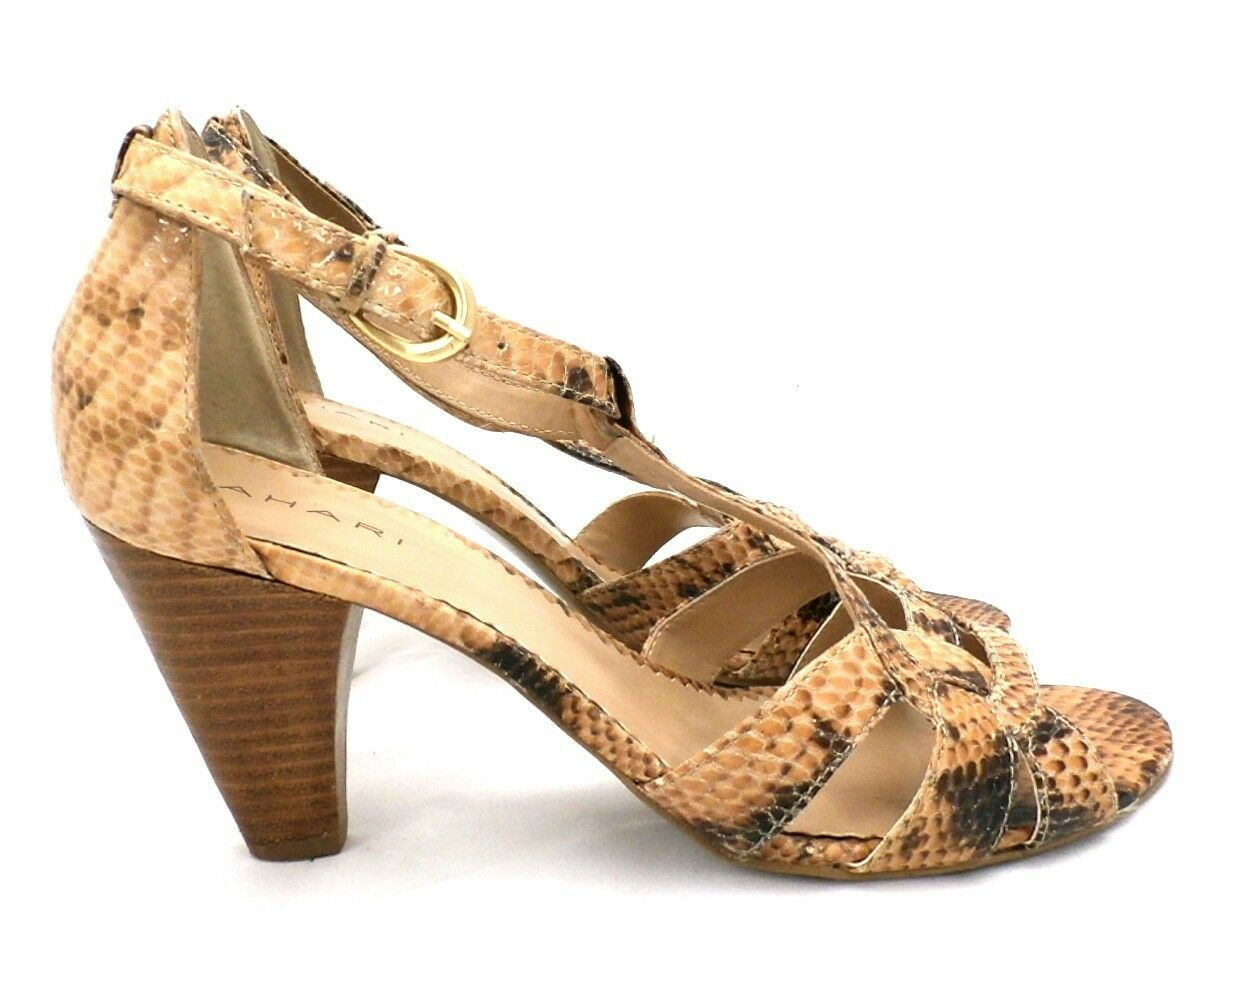 Tahari Dress Giselle Snakeskin Animal Print Dress Tahari Sandals Womens 7B Ankle Strap 509ca3